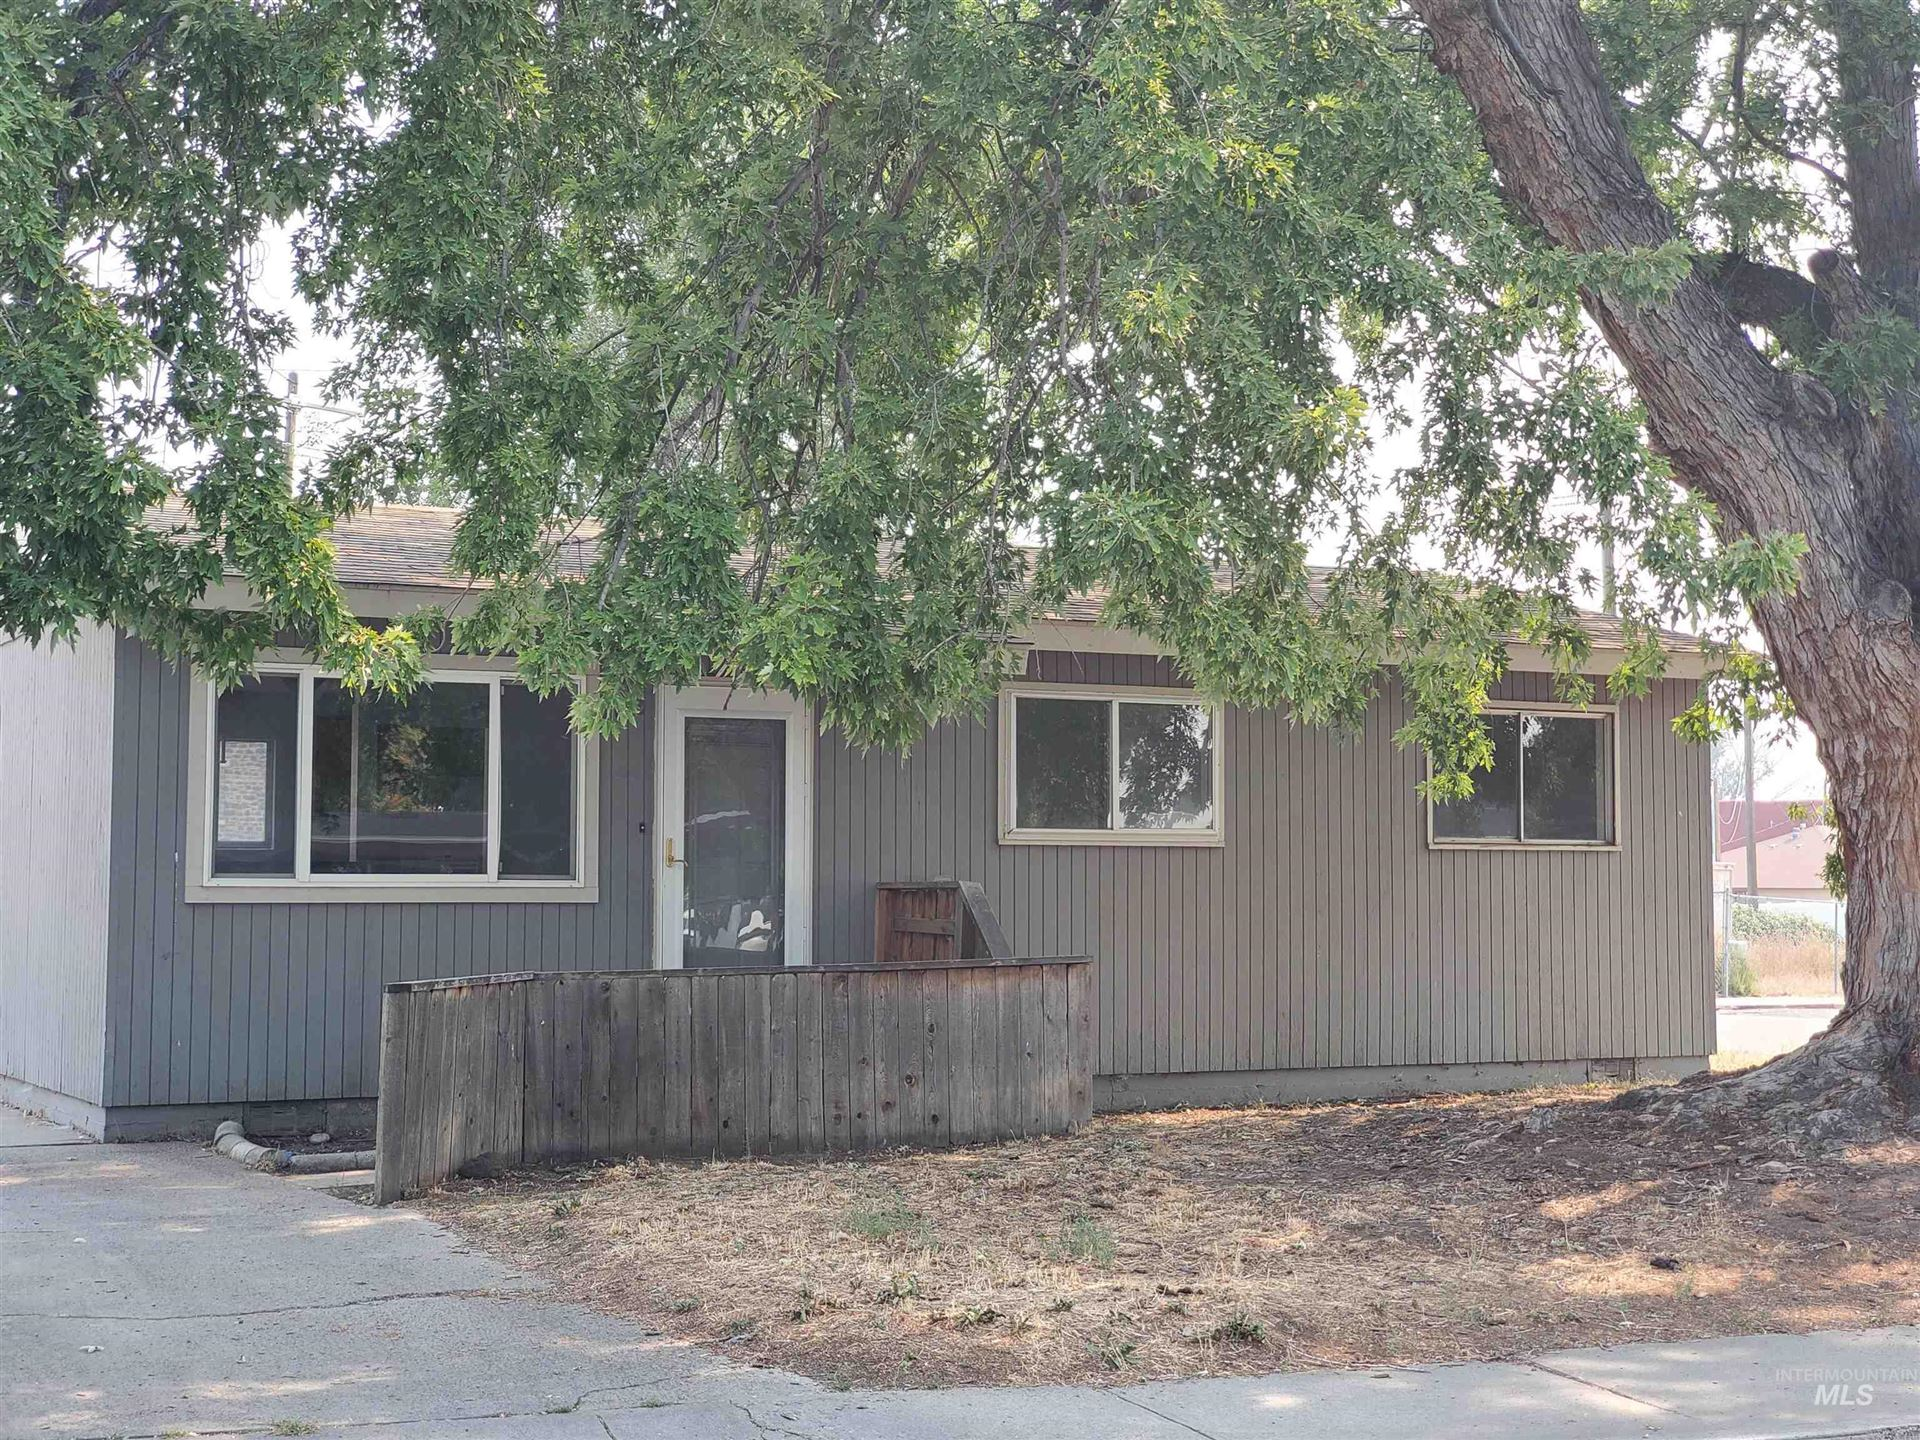 Photo of 202 N 4h West, Mountain Home, ID 83647-0000 (MLS # 98817944)